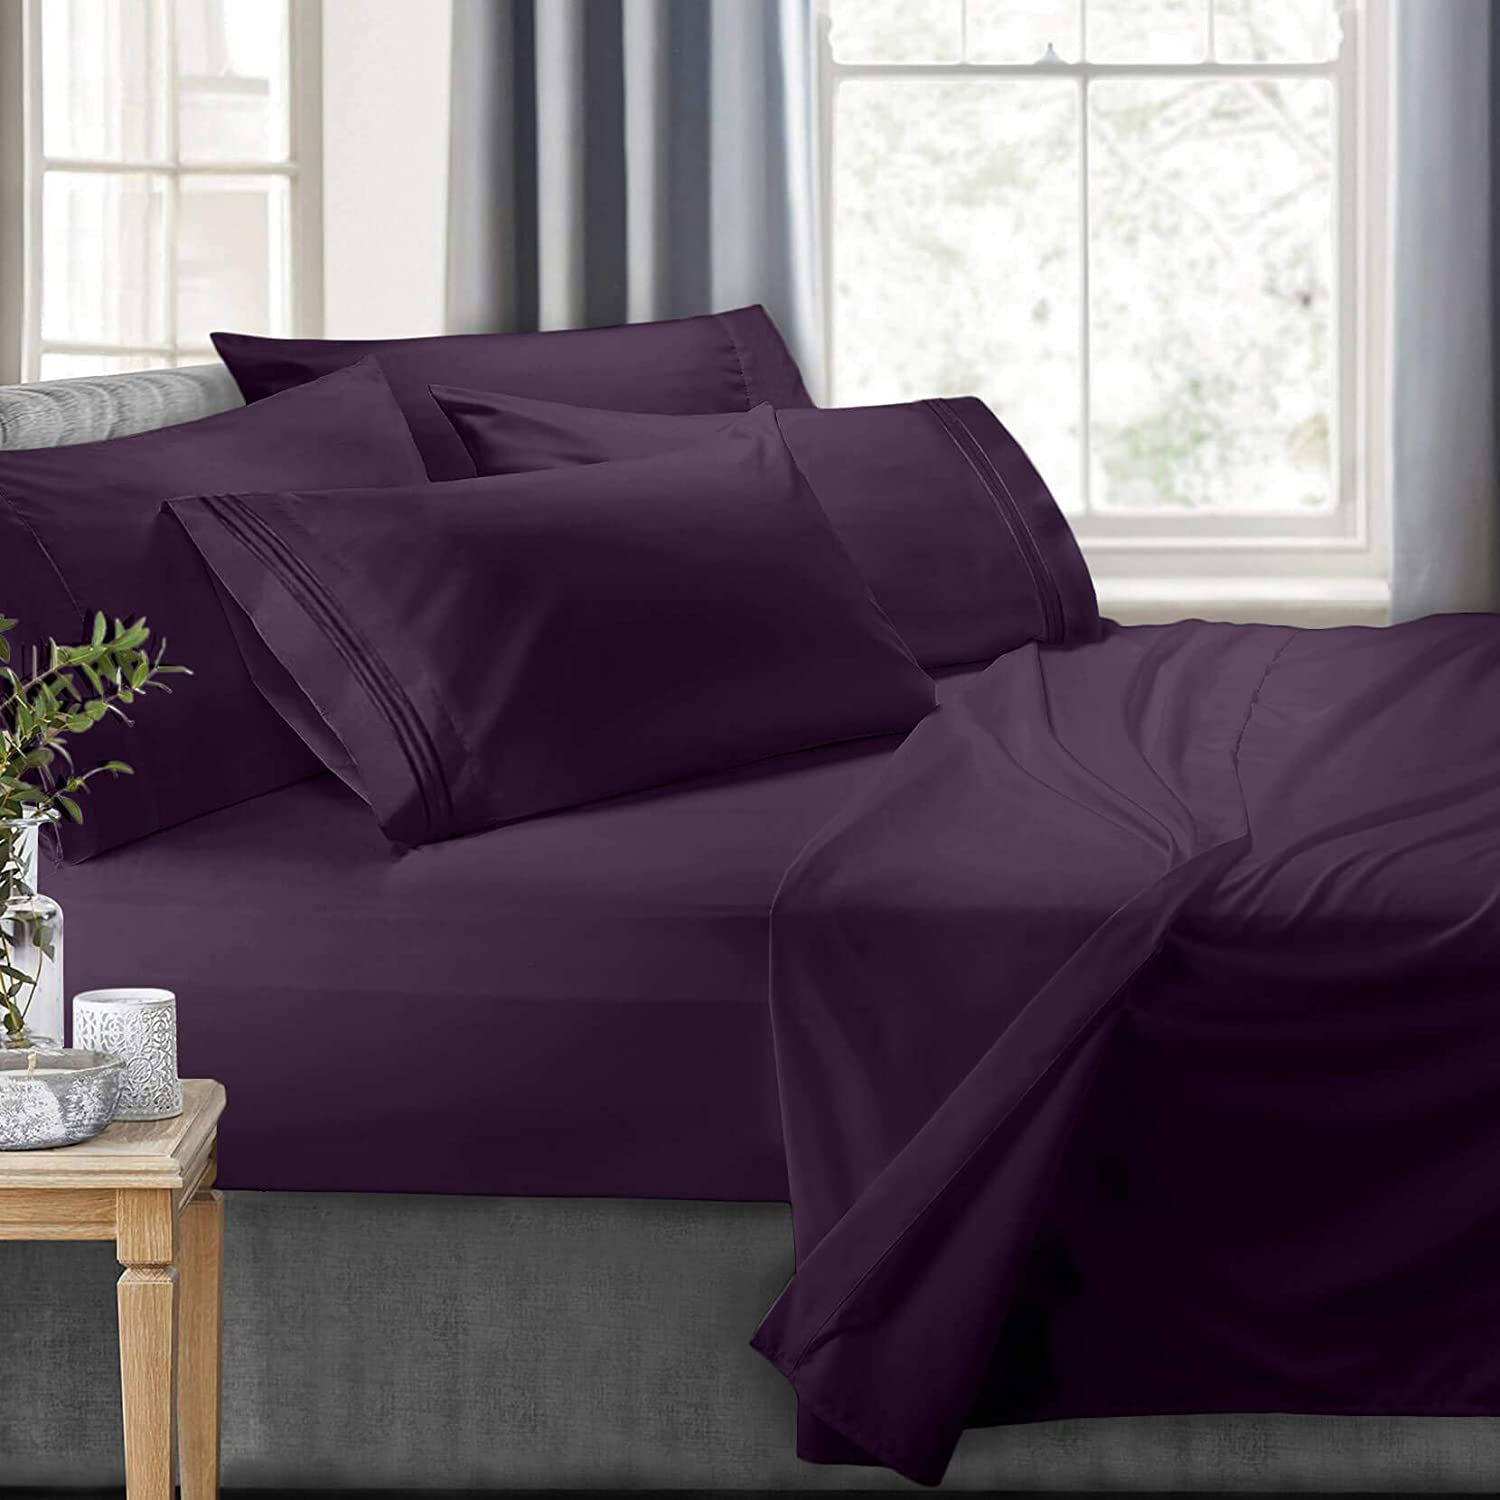 Clara Clark RV/Short Queen 6-Piece Bed Set for Campers-Deep Pocket Fitted Sheet Luxury Soft Microfiber, Hypoallergenic, Eggplant